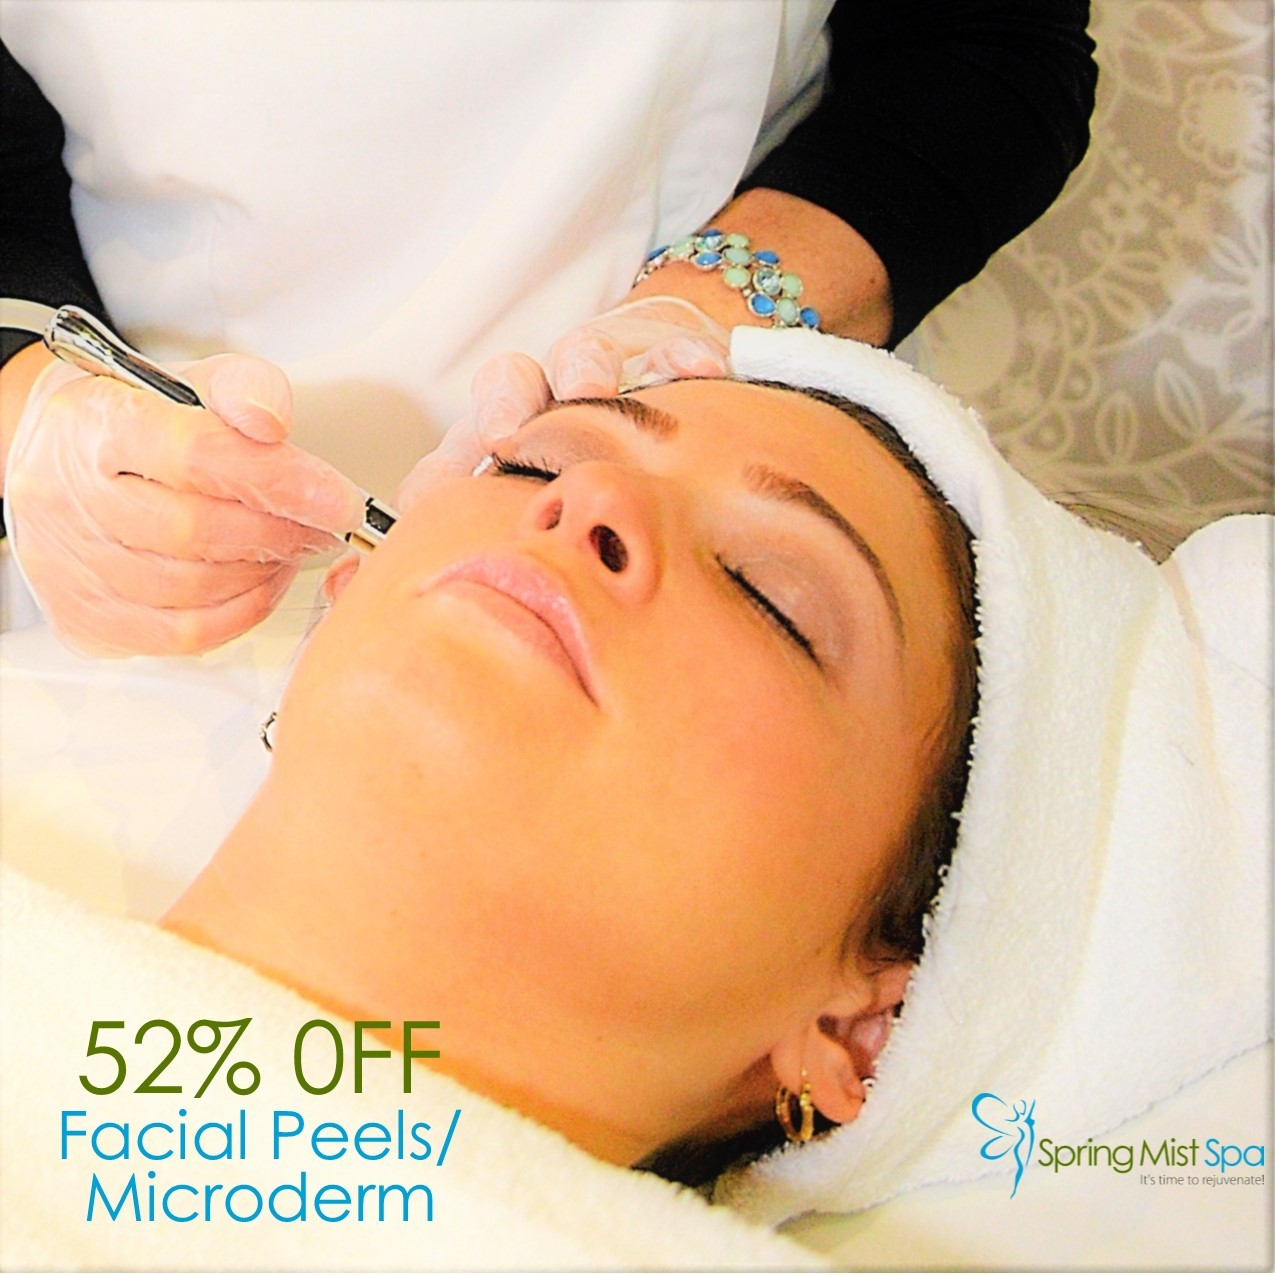 Spring Mist Milton Spa Specials, Offers, Deals And Discounts - Facial Peels and Microdermabrasion